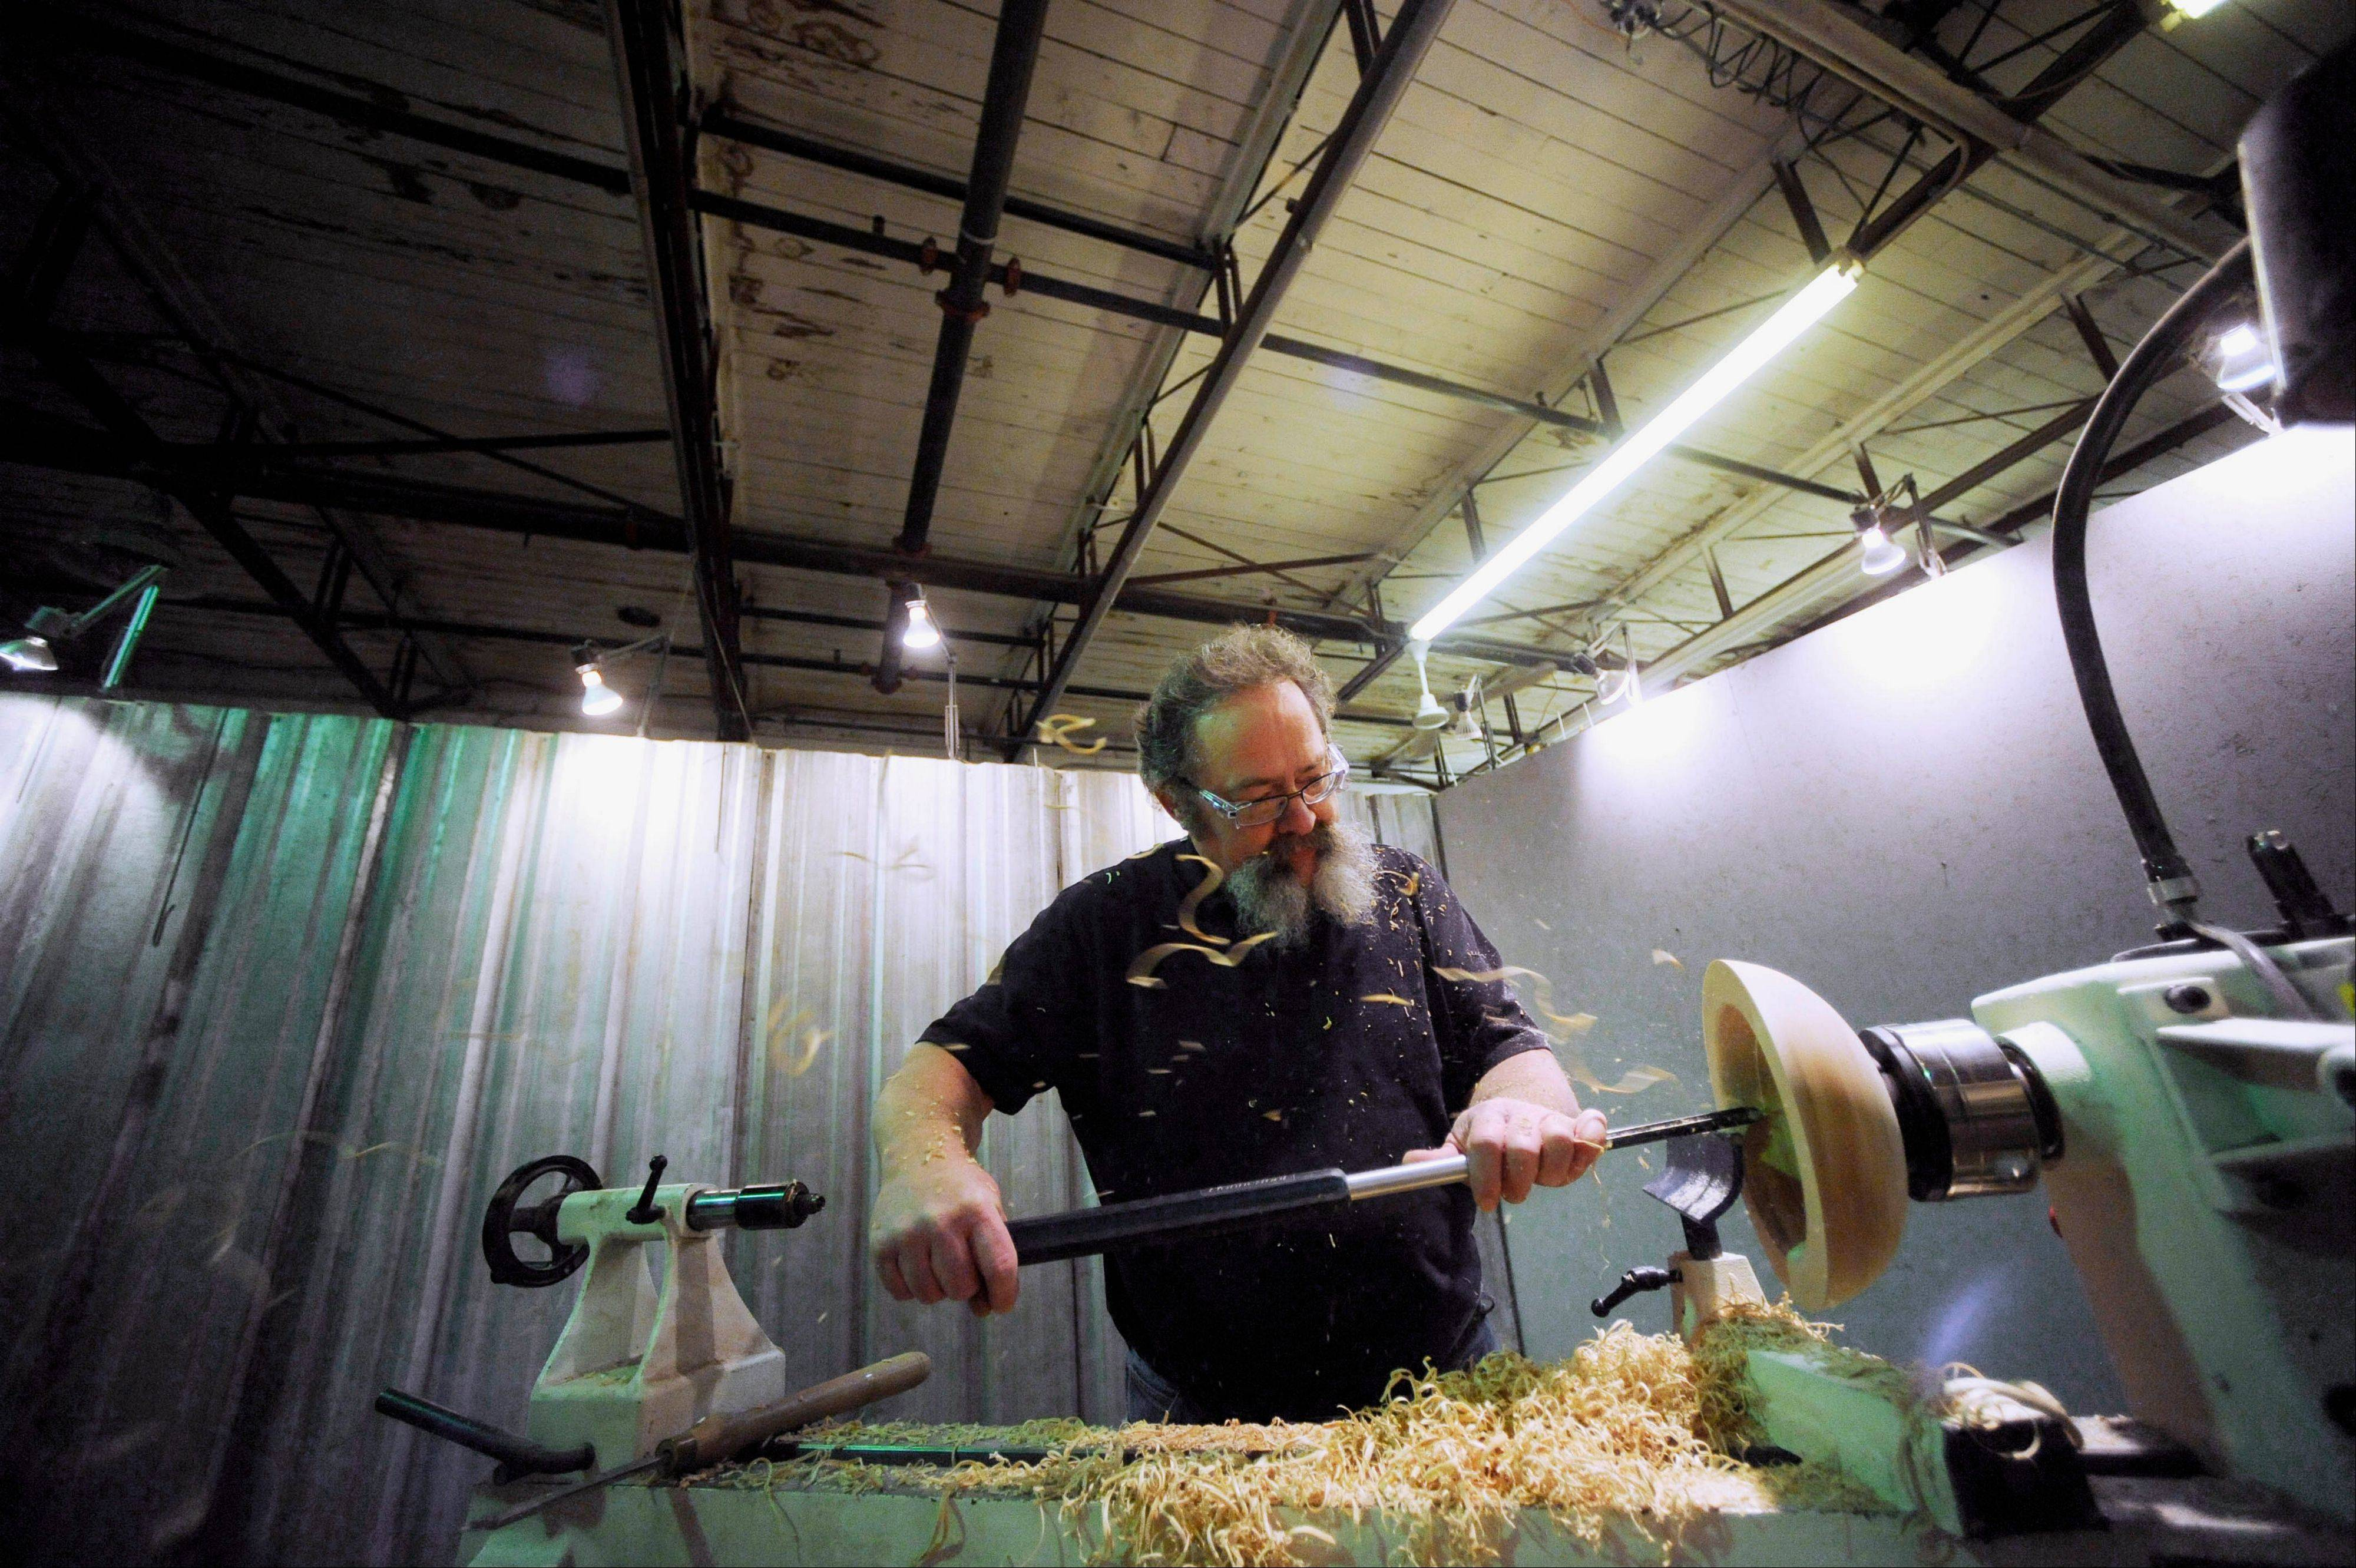 Richard Coers uses a lathe and a chisel to transform a block of wood into a bowl at The Atelier Building in Peoria.